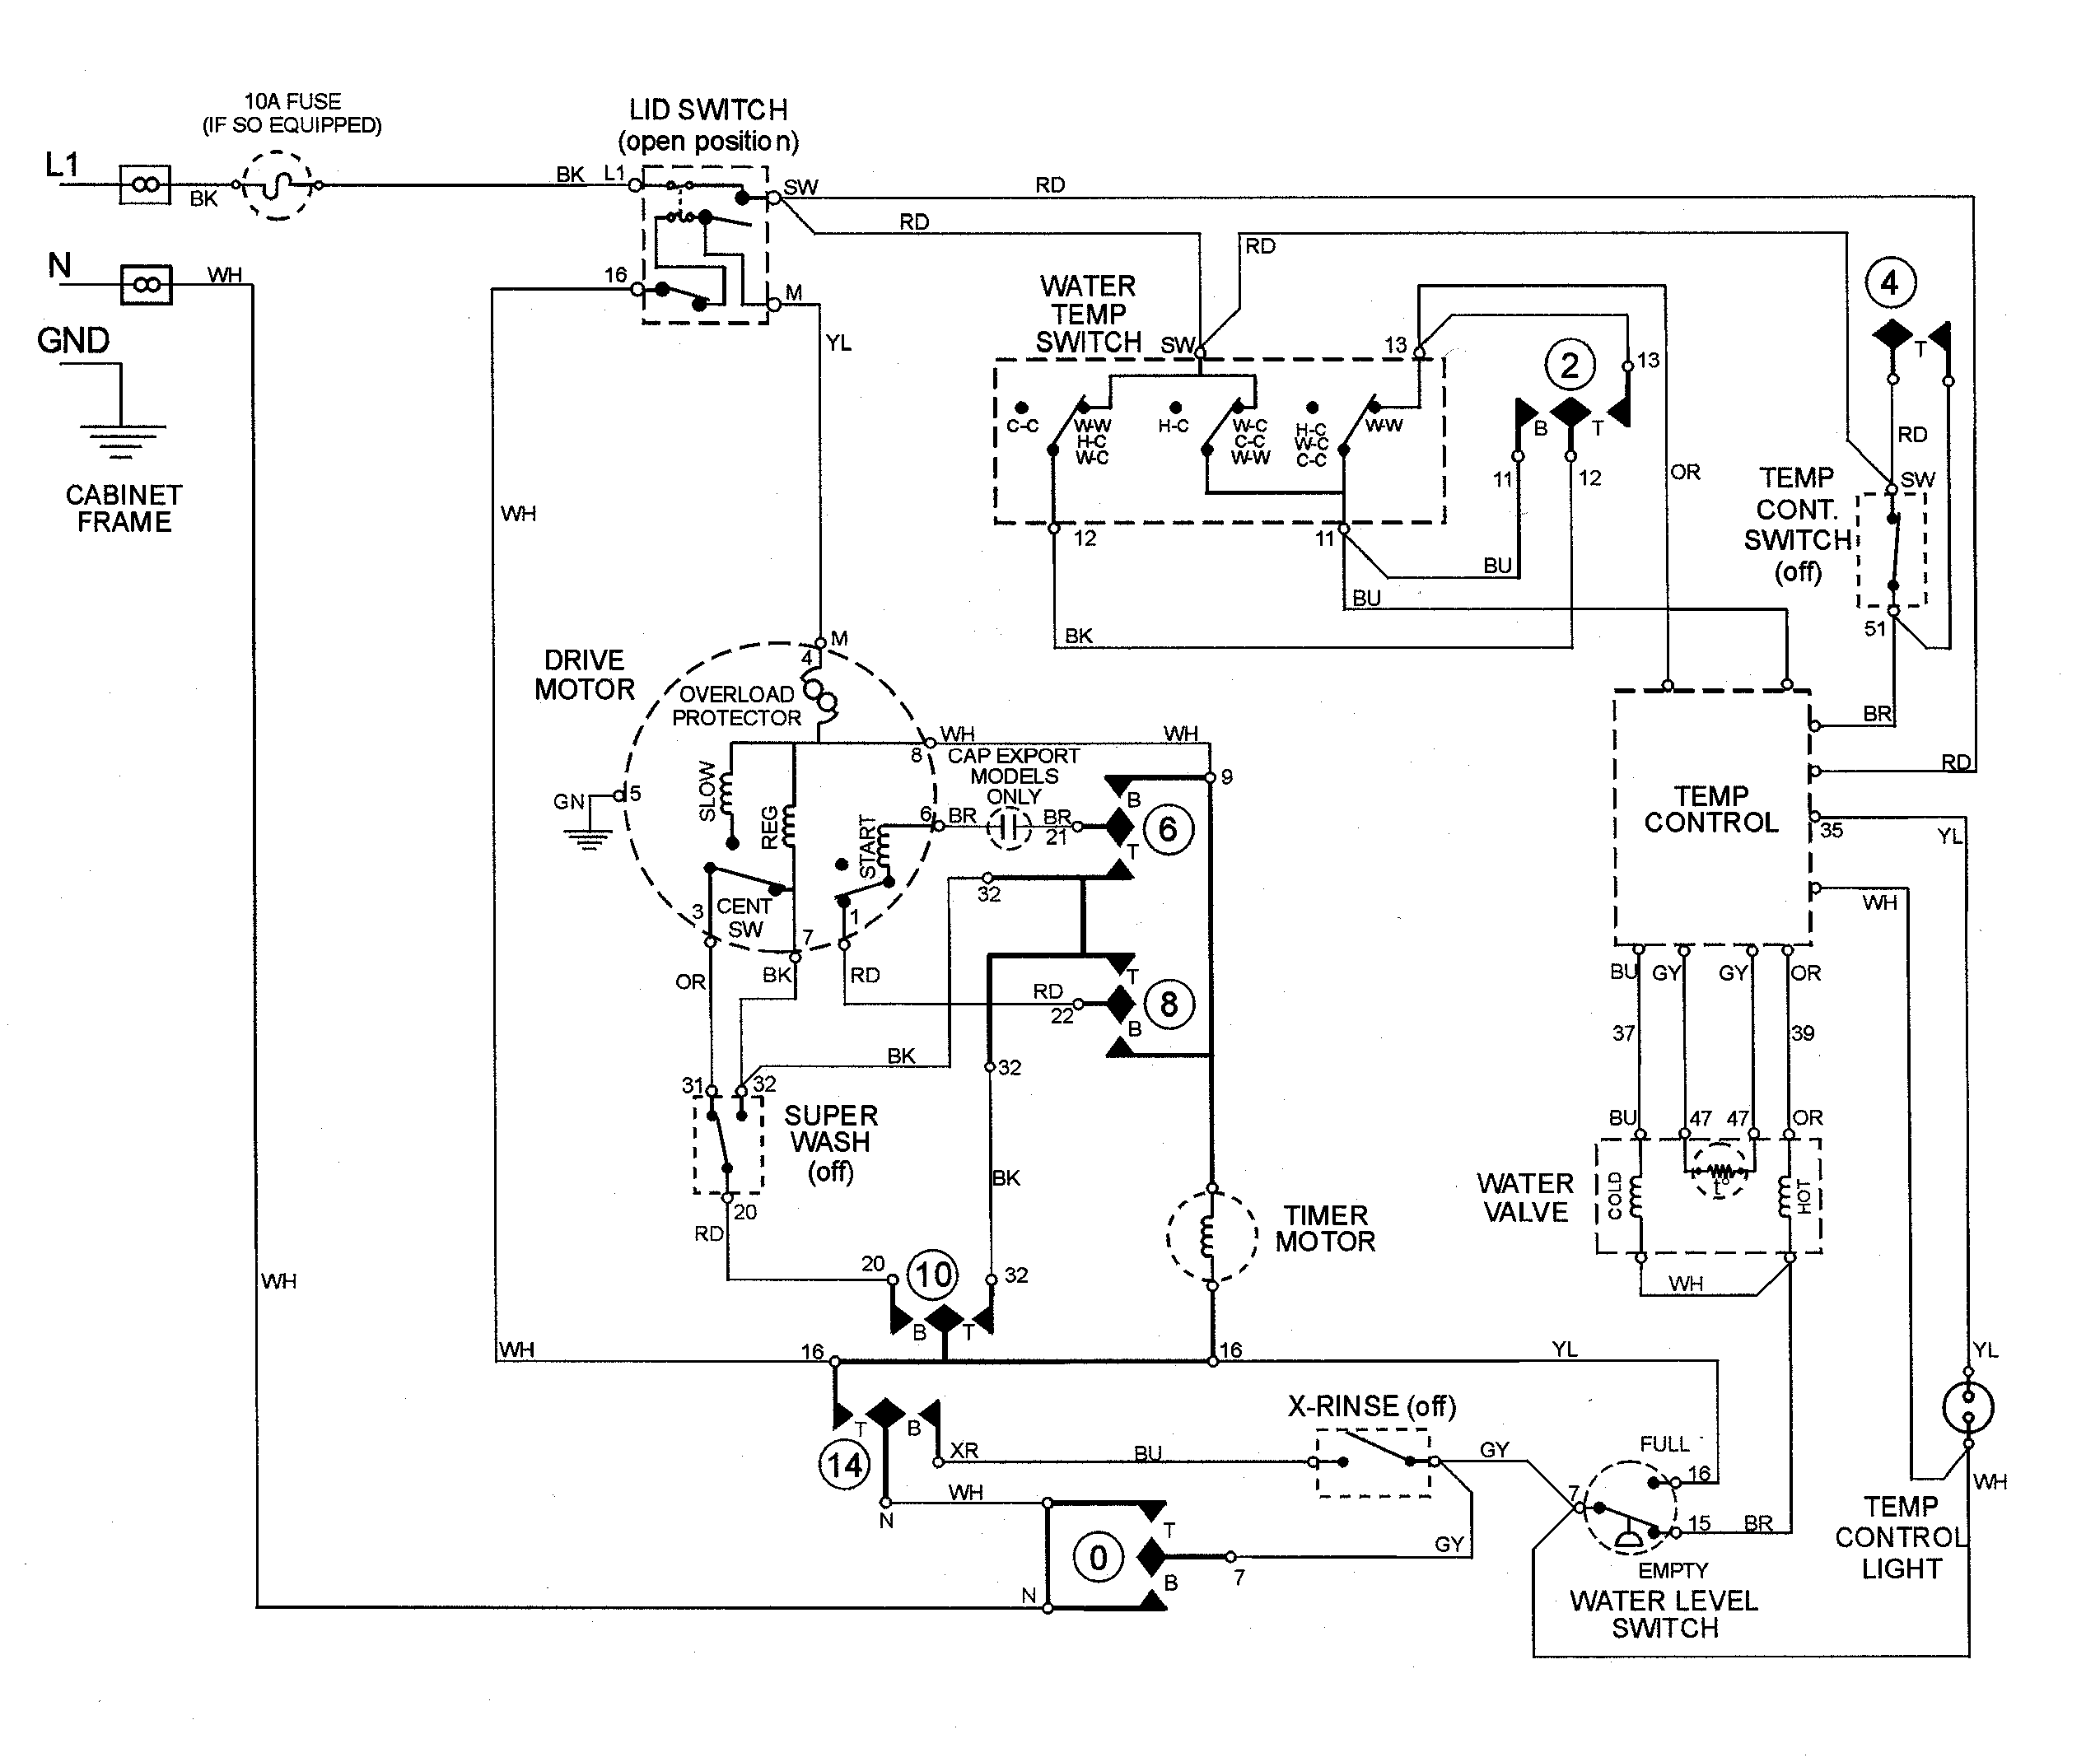 ge washing machine motor wiring diagram, ge, wiring diagram and whirlpool cabrio washer wiring diagram ge washing machine motor wiring diagram, ge, wiring diagram and washing machine motor,